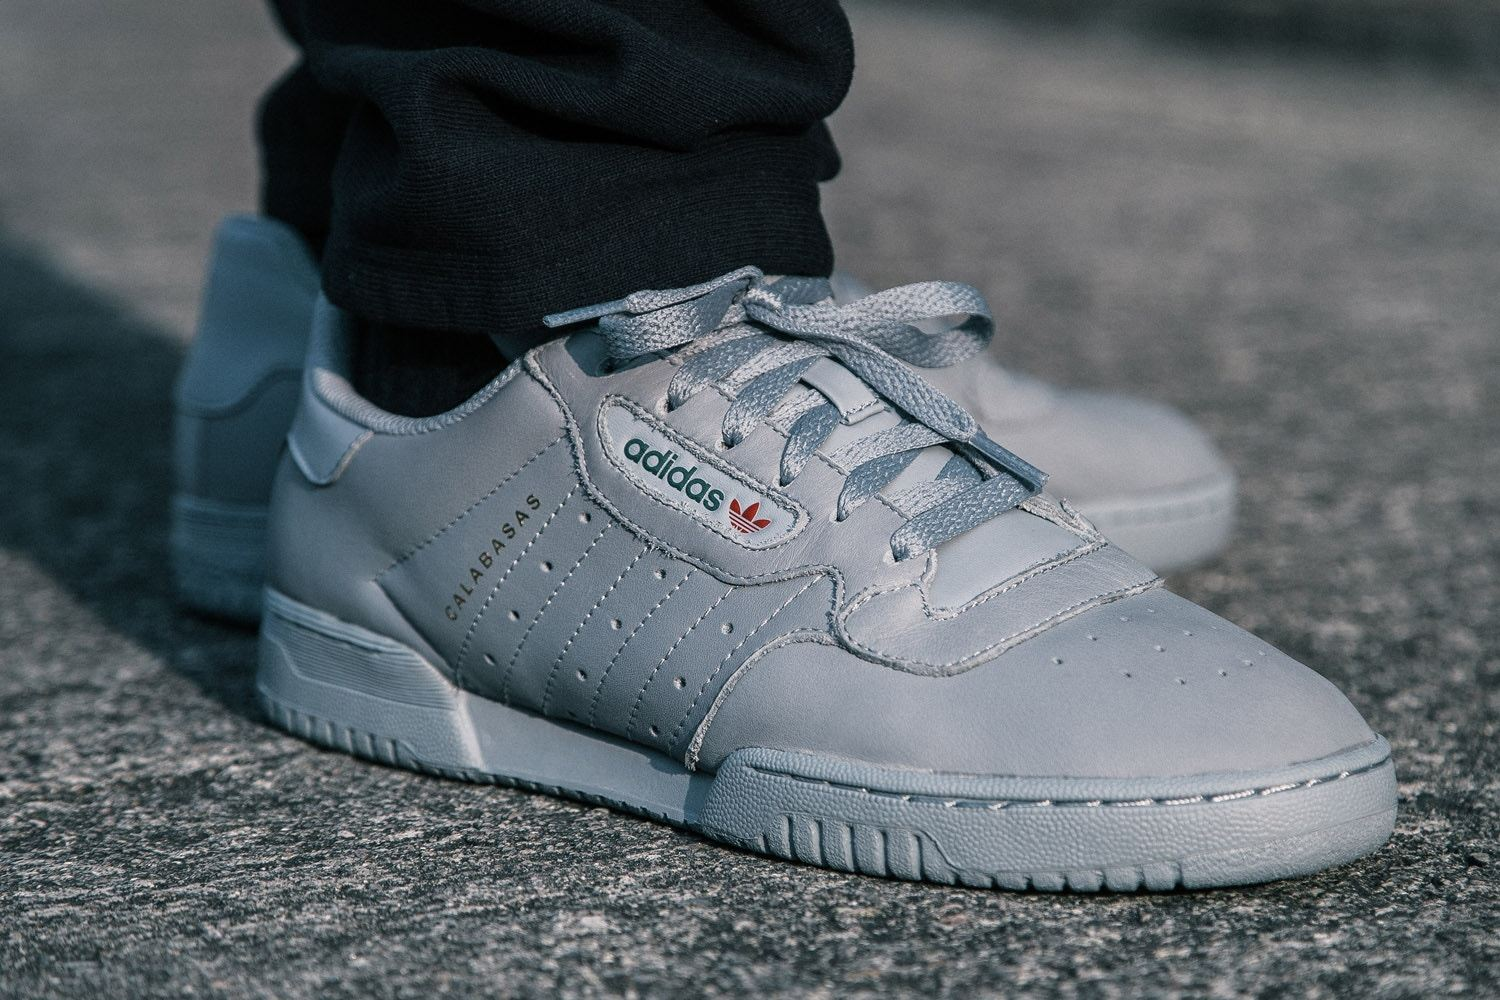 4e86b9f21 10 Things You Didn t Know About the Adidas Yeezy Powerphase